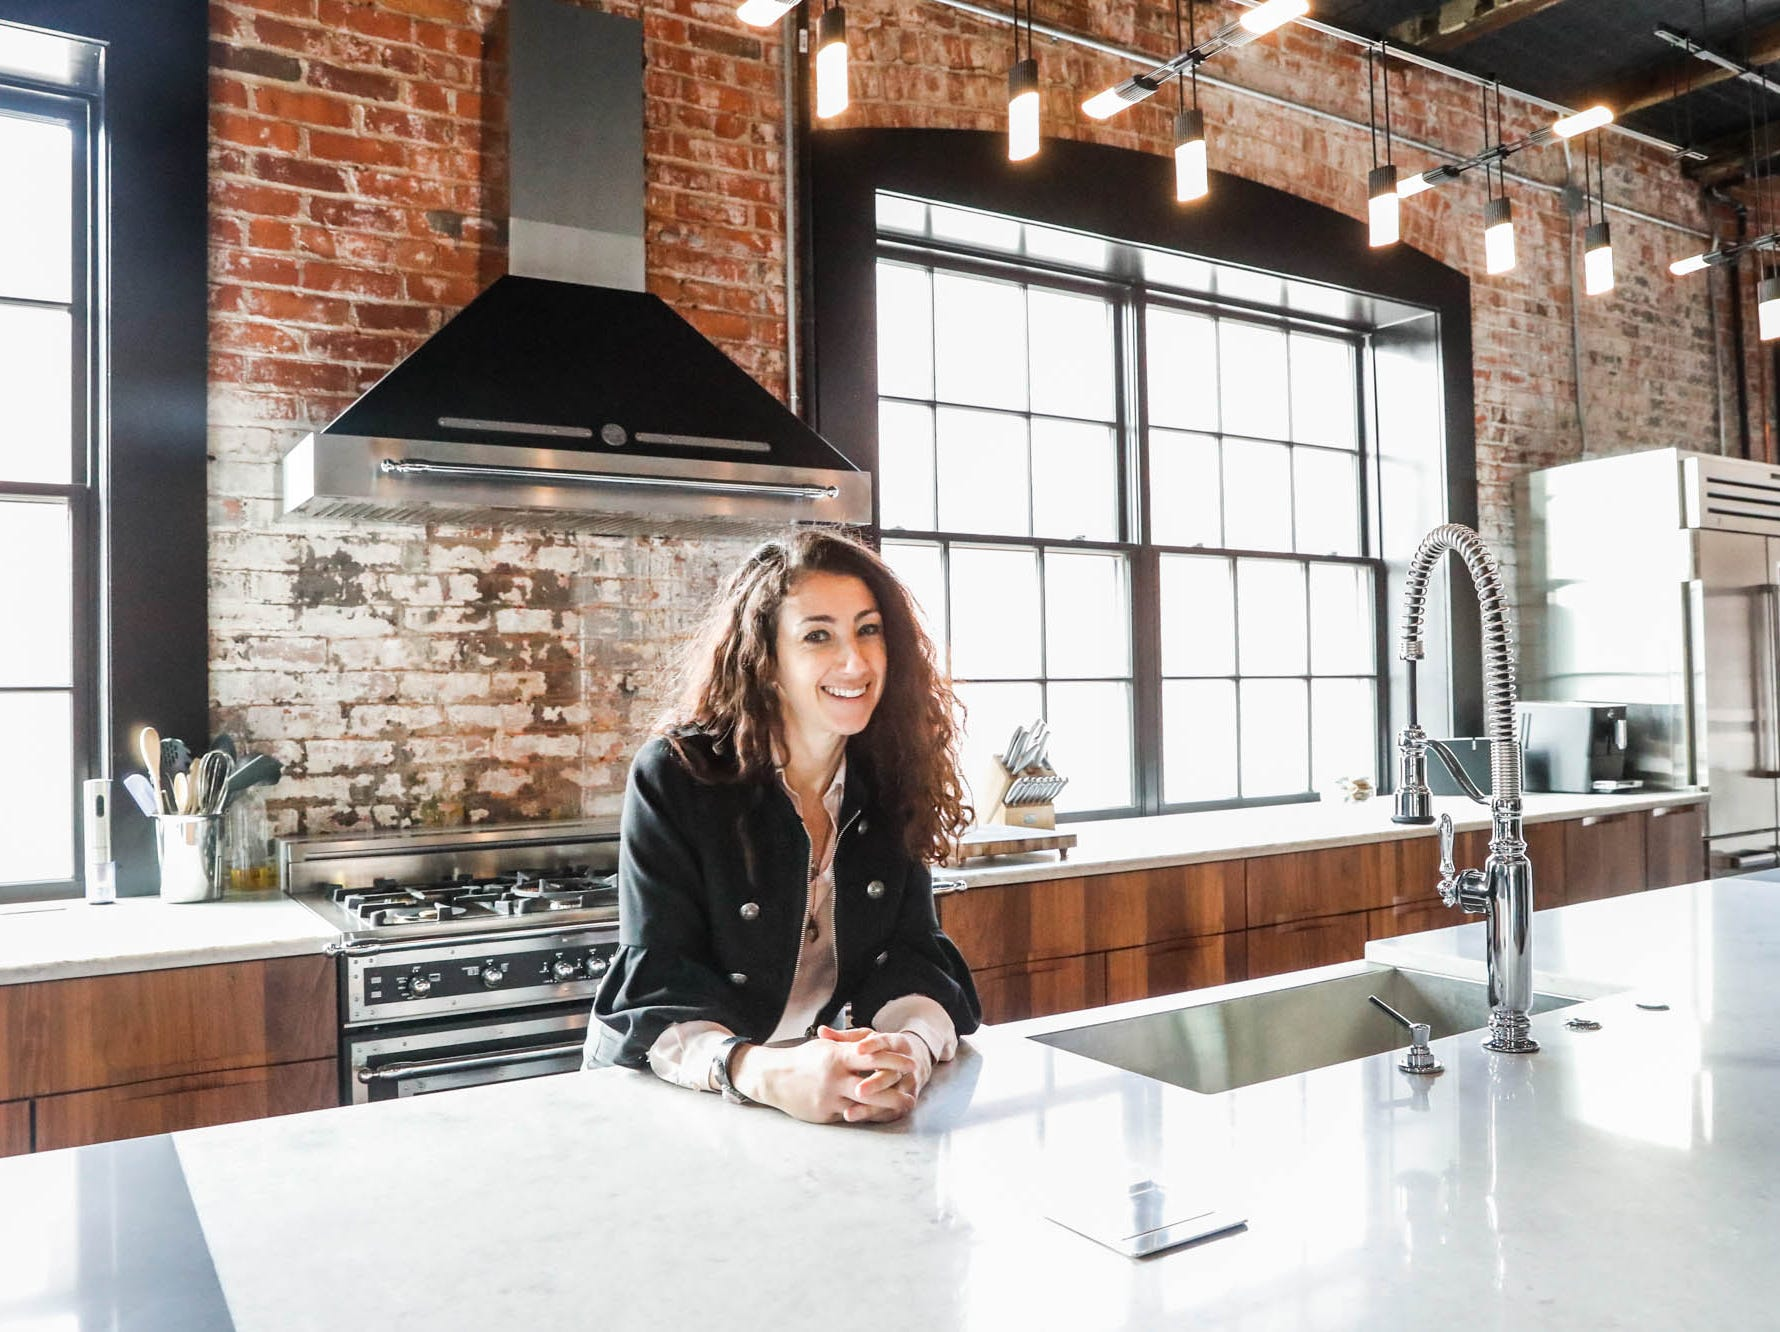 "Rachel Prince, an Indianapolis-based Airbnb ""superhost"" and manager for other owners of short-term rentals, stands inside the ""Lavish Lair,"" located inside the Blumlux Diamond Building, 740 E. North Street, Indianapolis Ind., on Monday, March 11, 2019. The property is currently for sale and available for short term Airbnb rental.For more info: www.rentalpreneur.com, Hostsofindy.com, 317-797-2525."